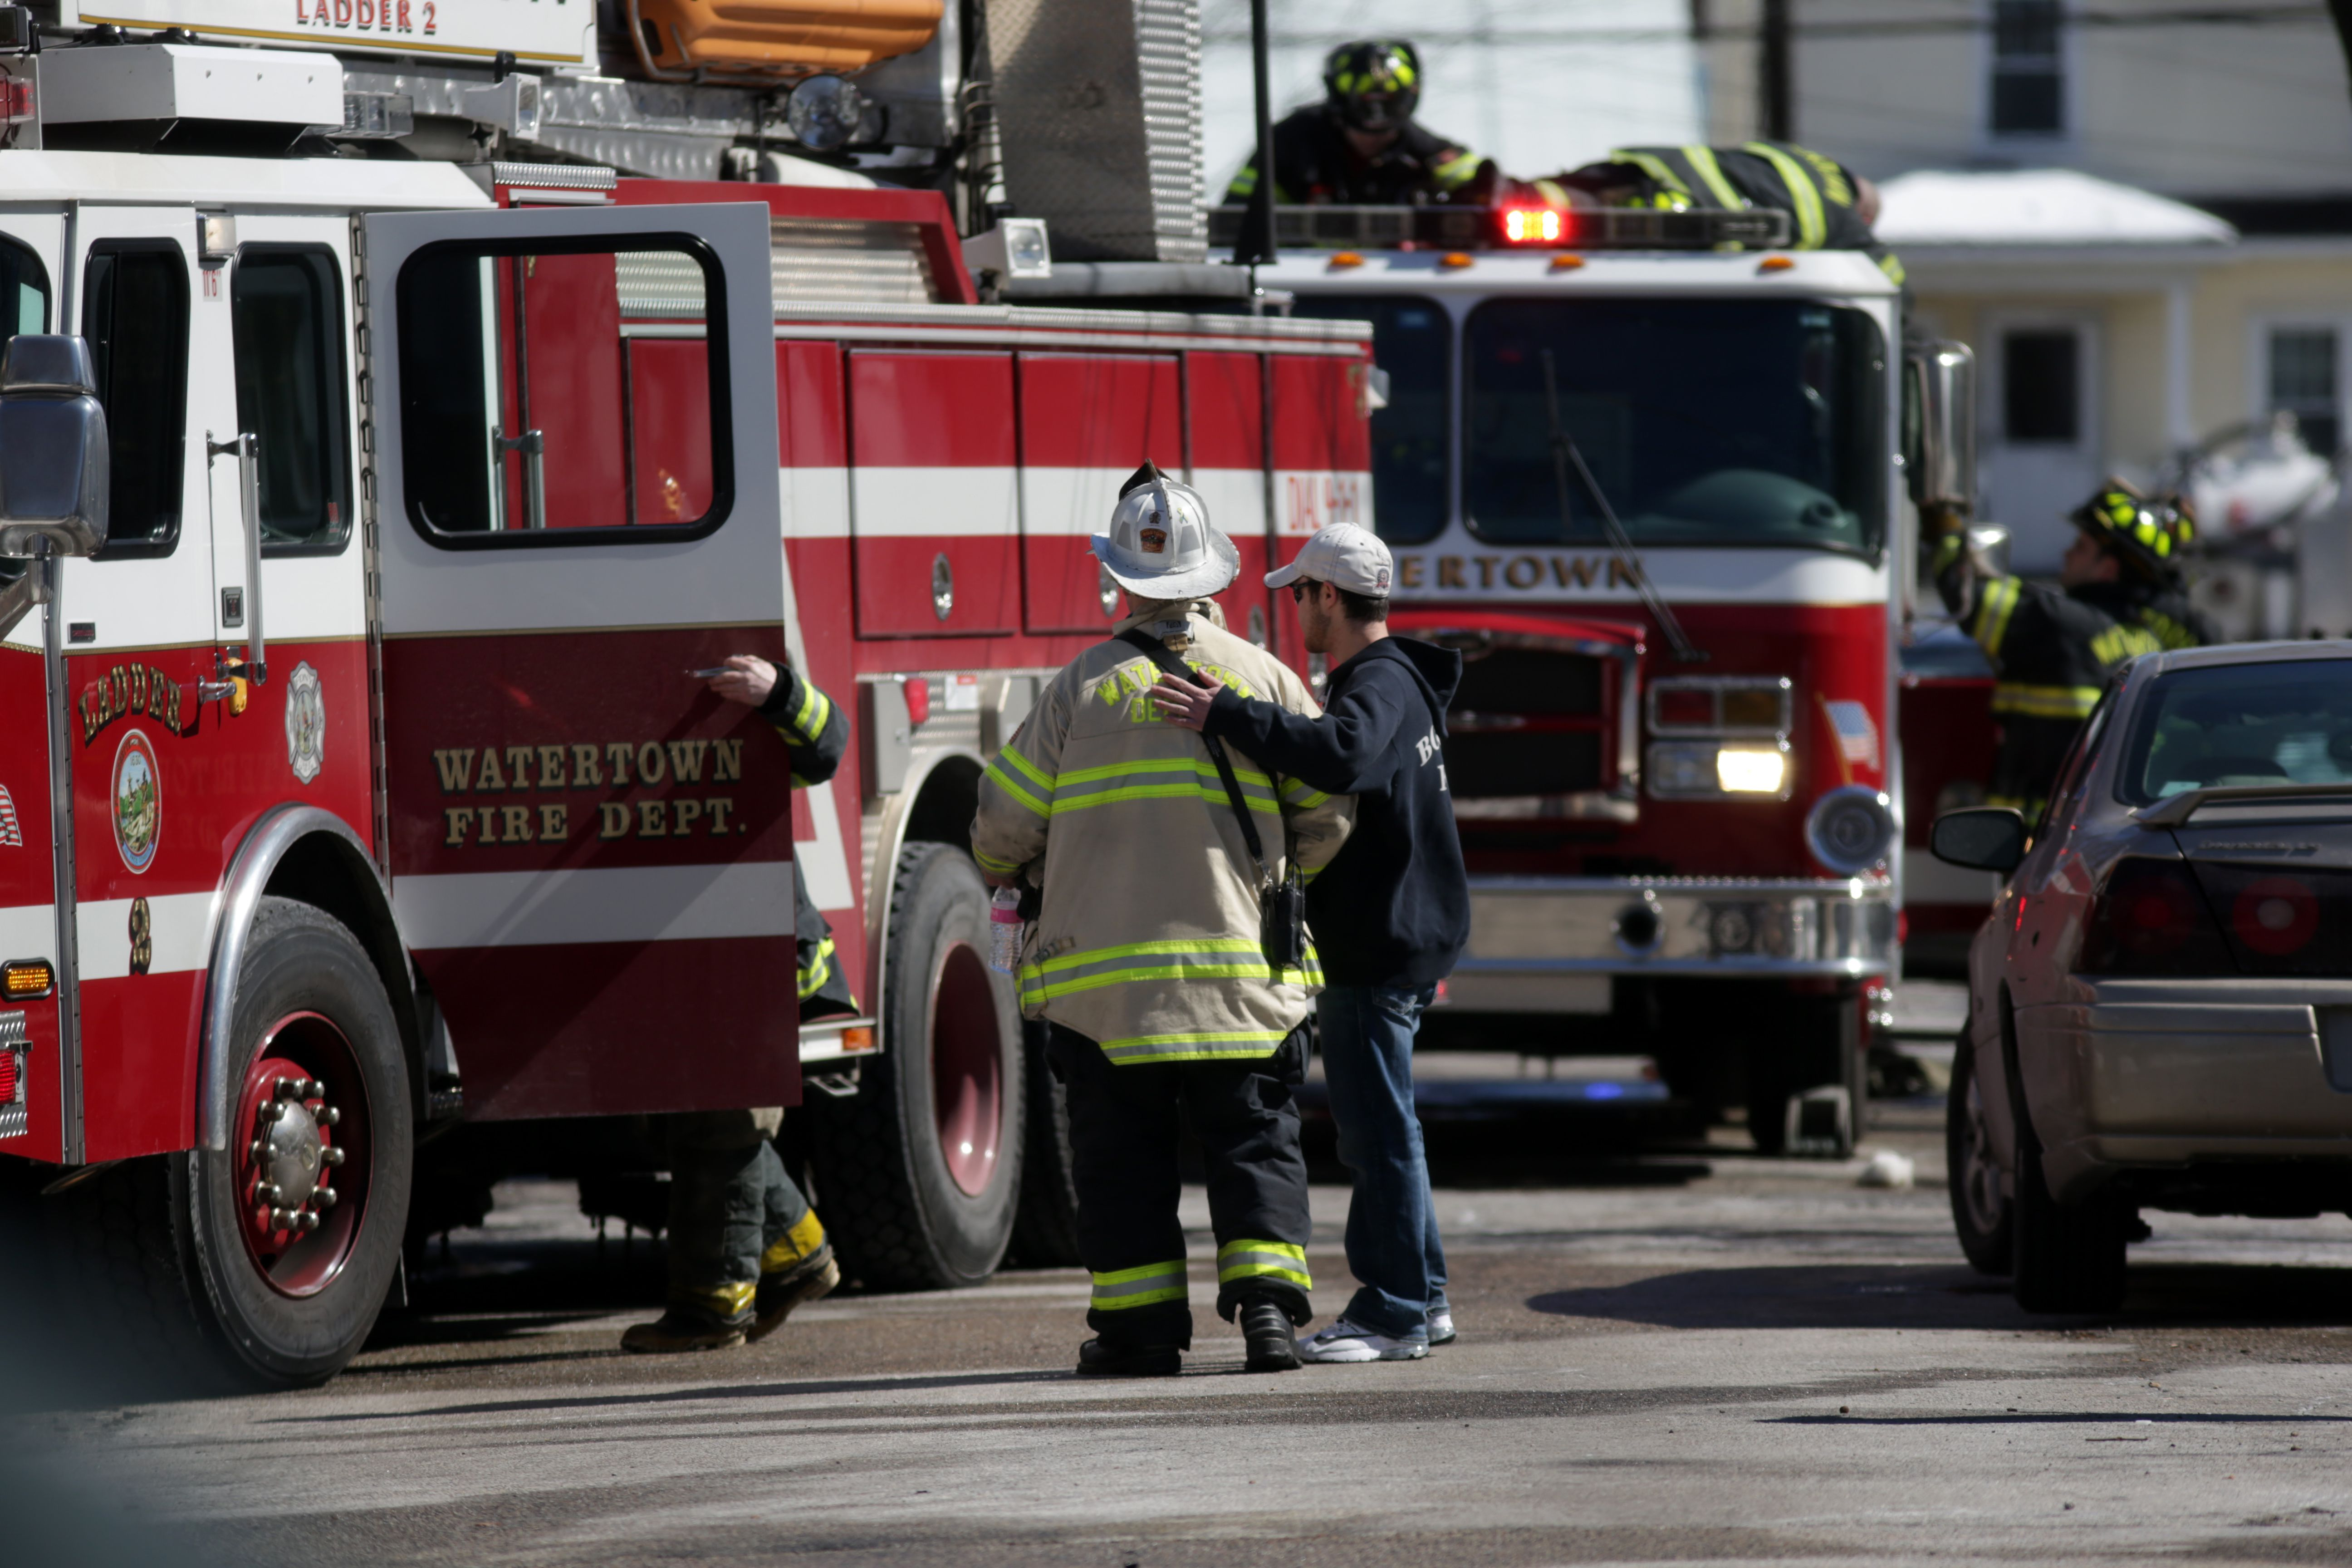 Firefighter dies after responding to Watertown blaze - The